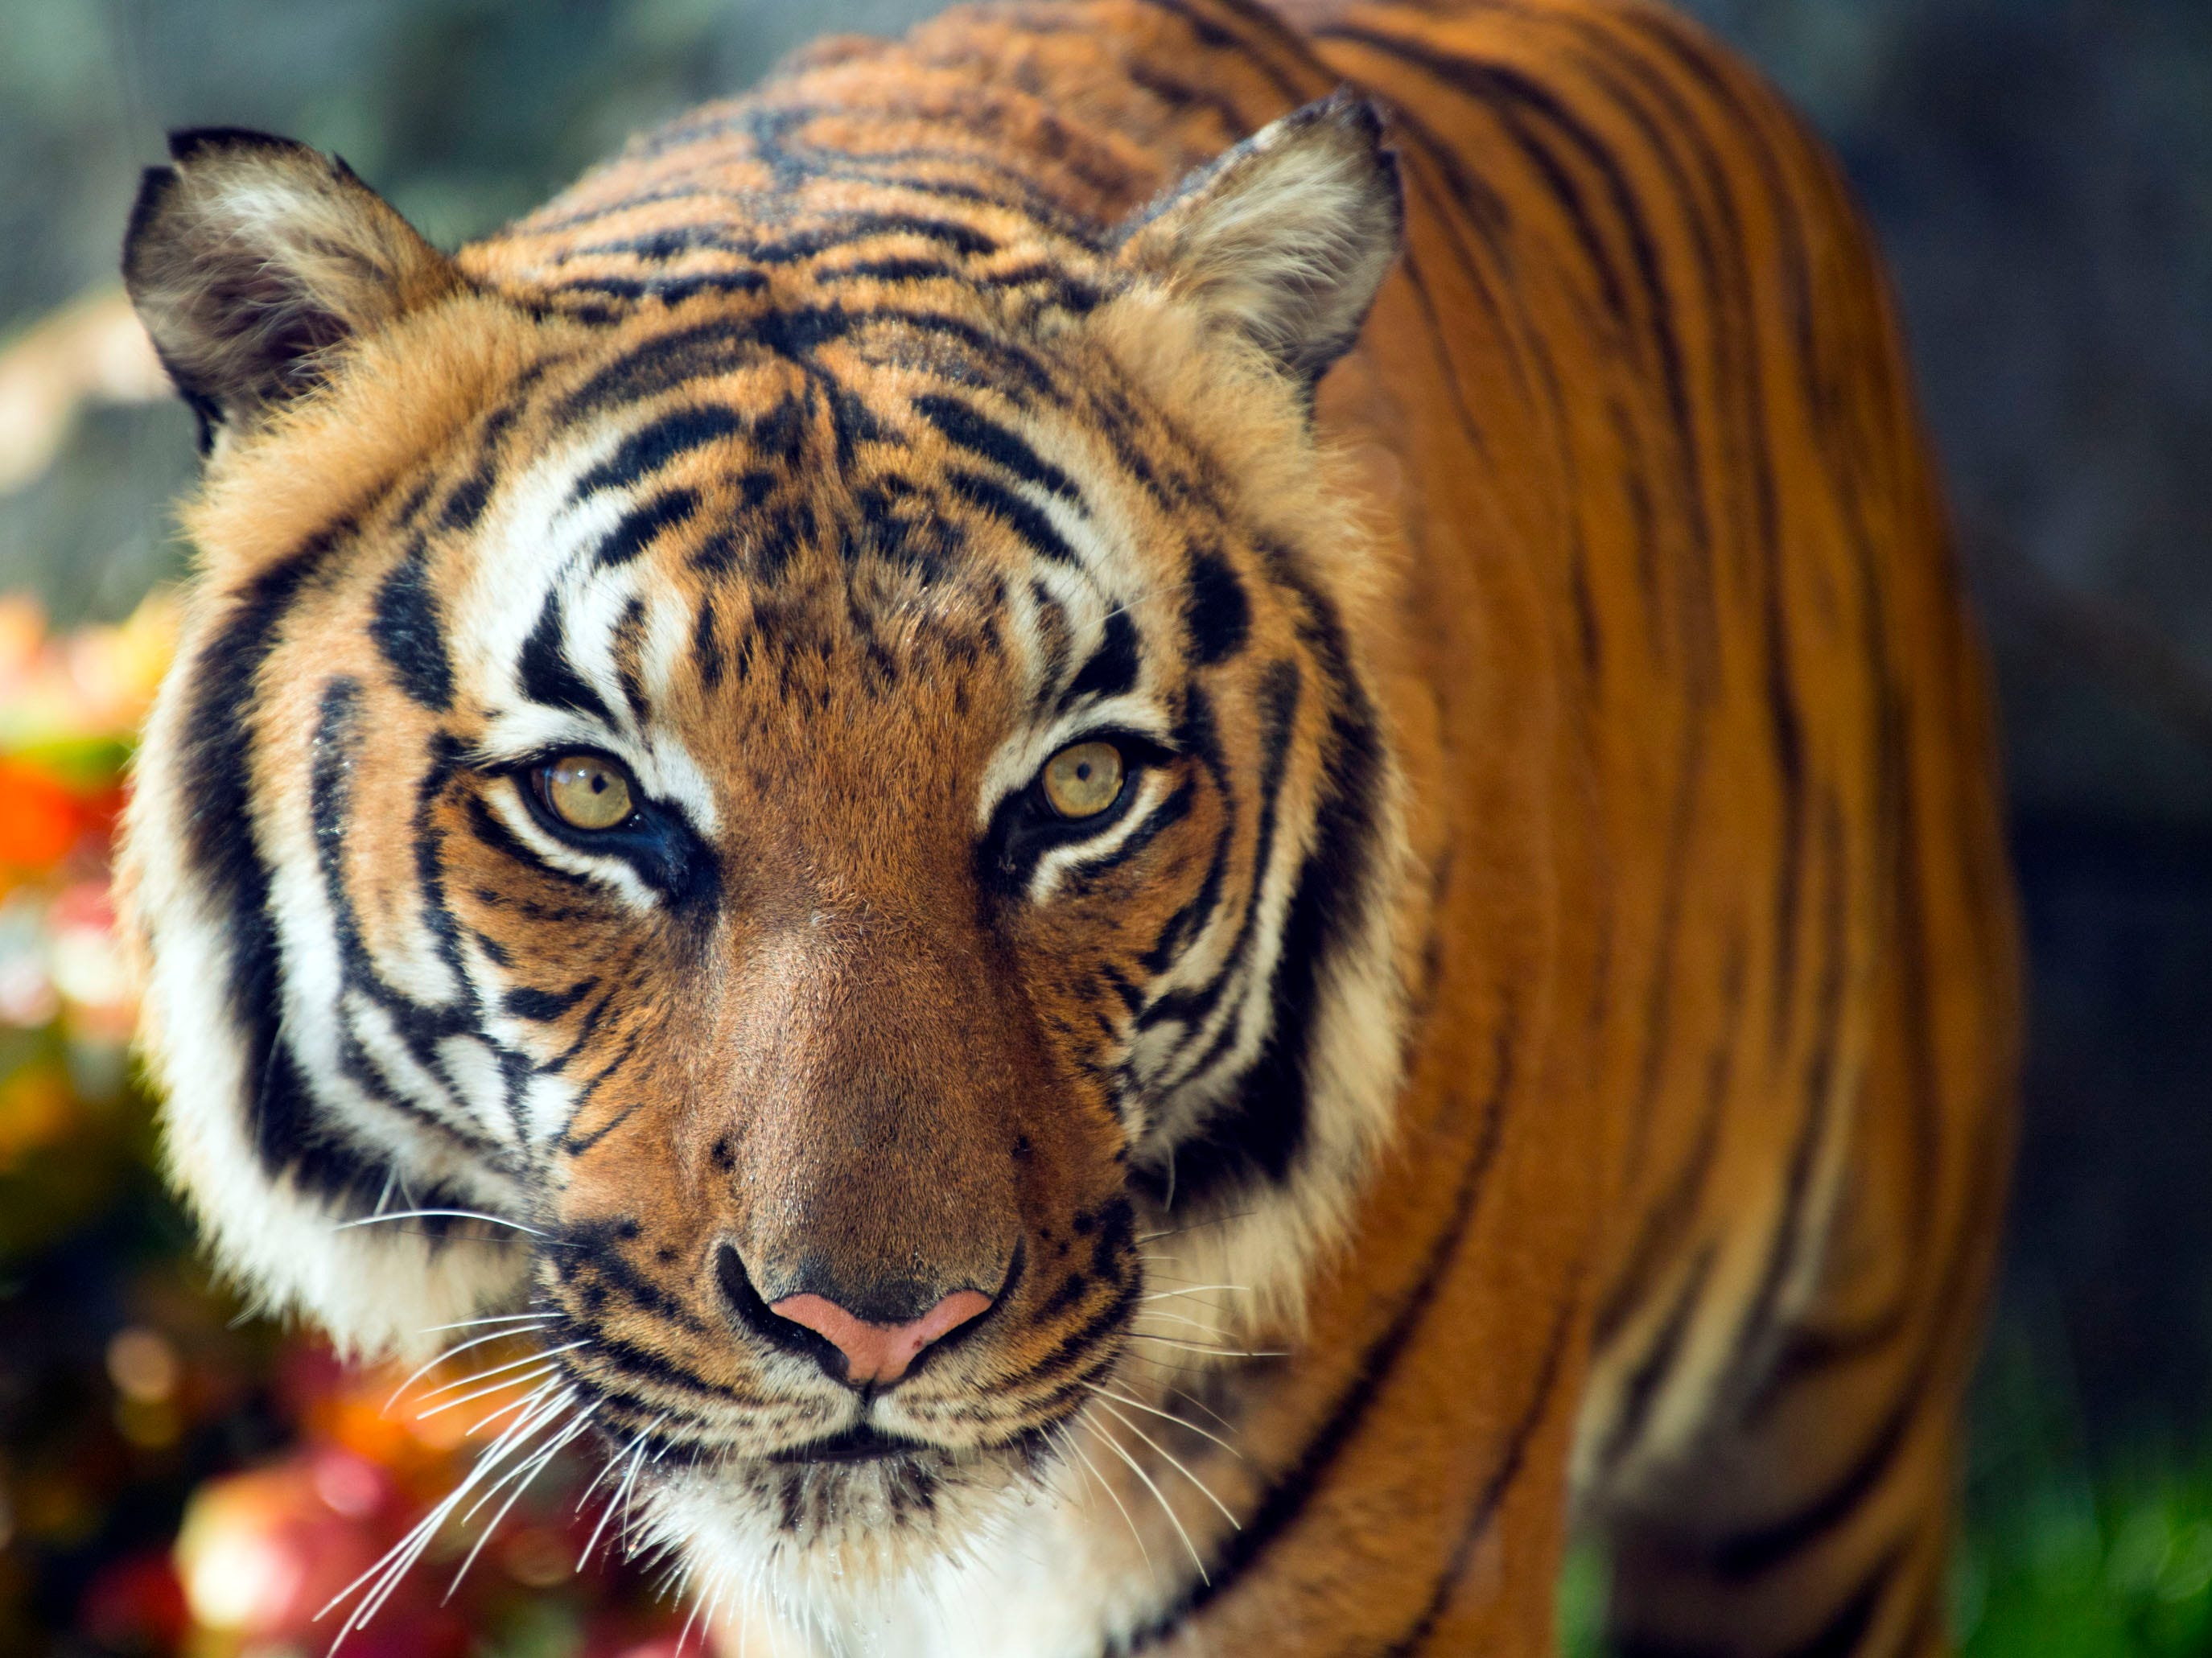 Tanvir paces the grounds of the Tiger Forest habitat. He is one of two male Malayan tigers at Zoo Knoxville.